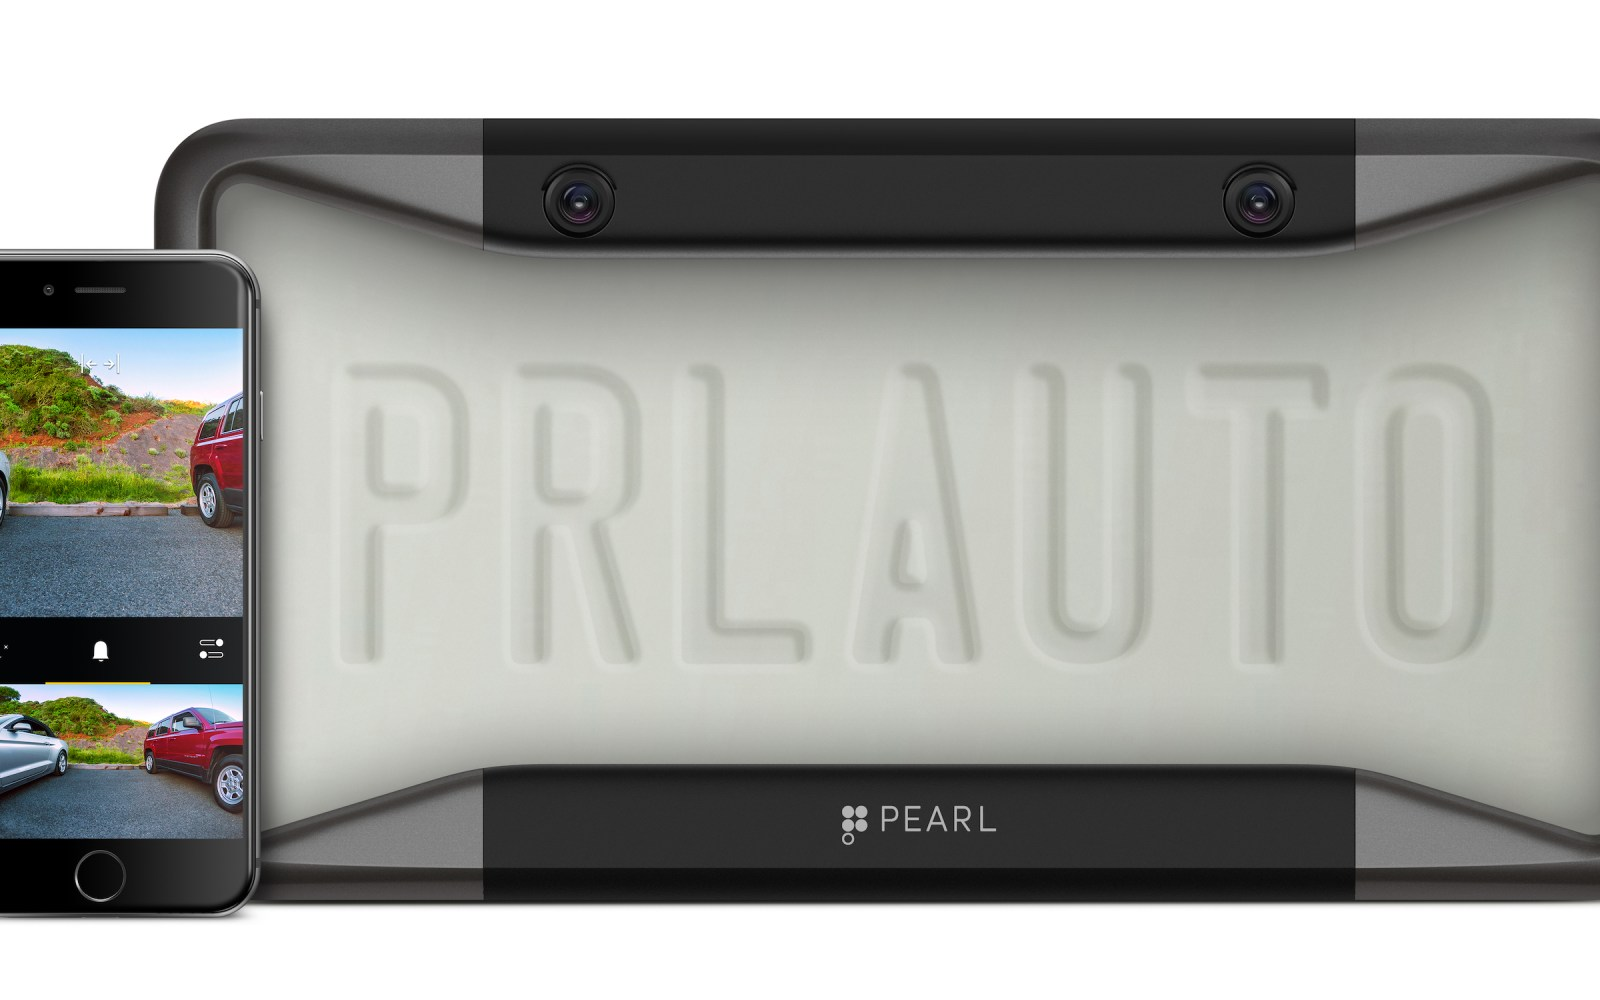 Ex-Apple engineers made this $499 rearview backup camera that uses iPhone as a display